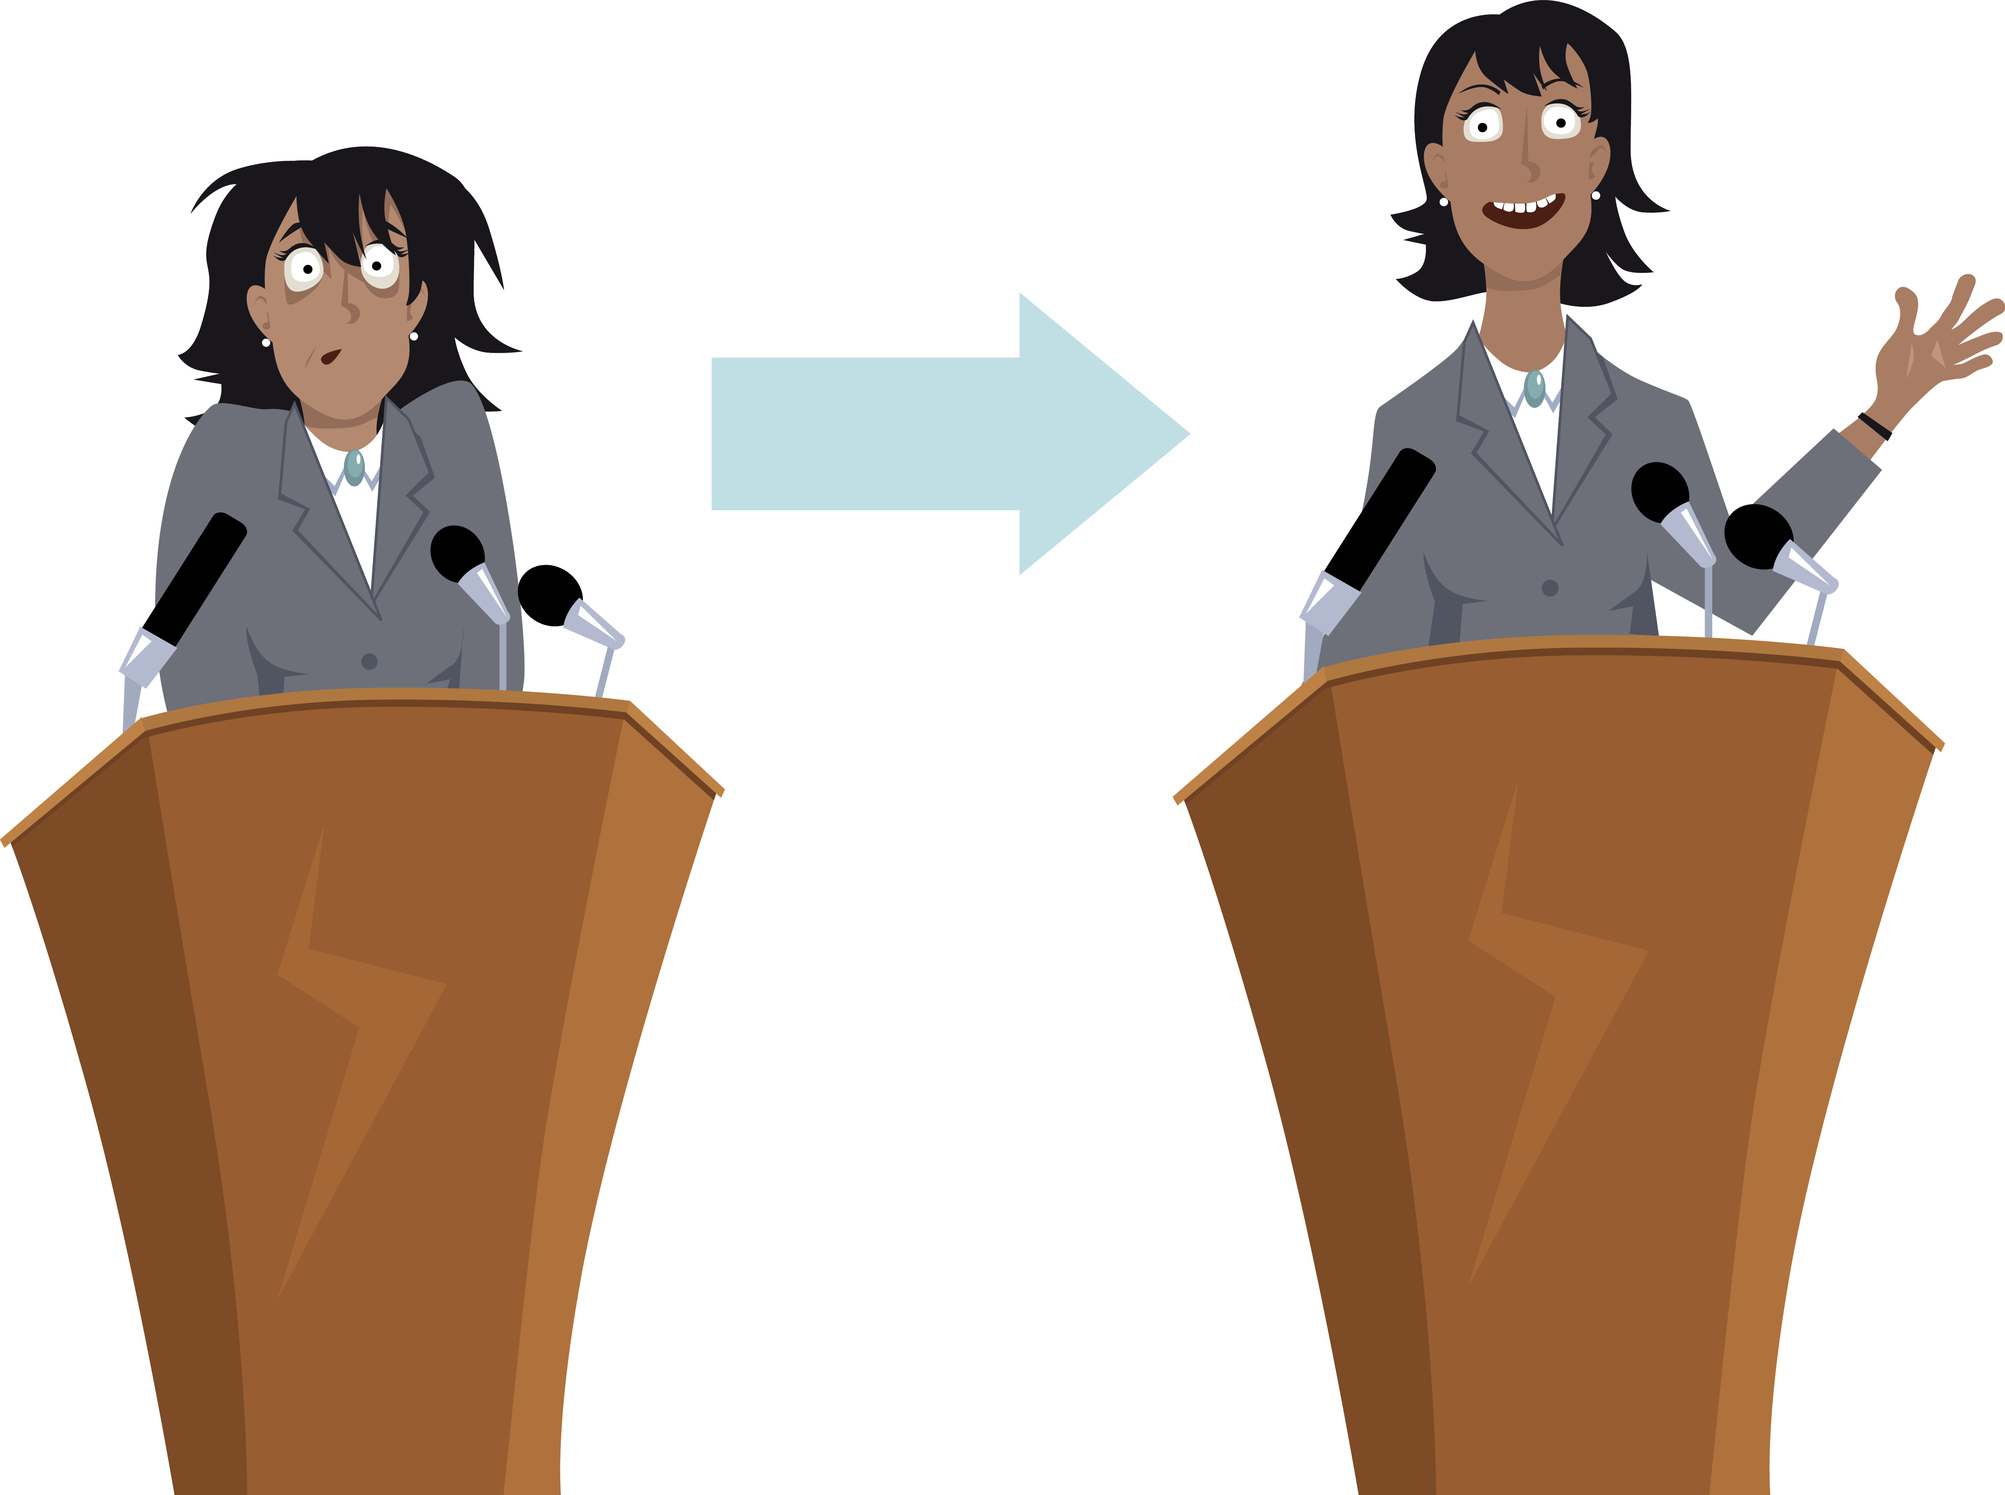 Anxious businesswoman character before and after public speaking training, EPS 8 vector illustration